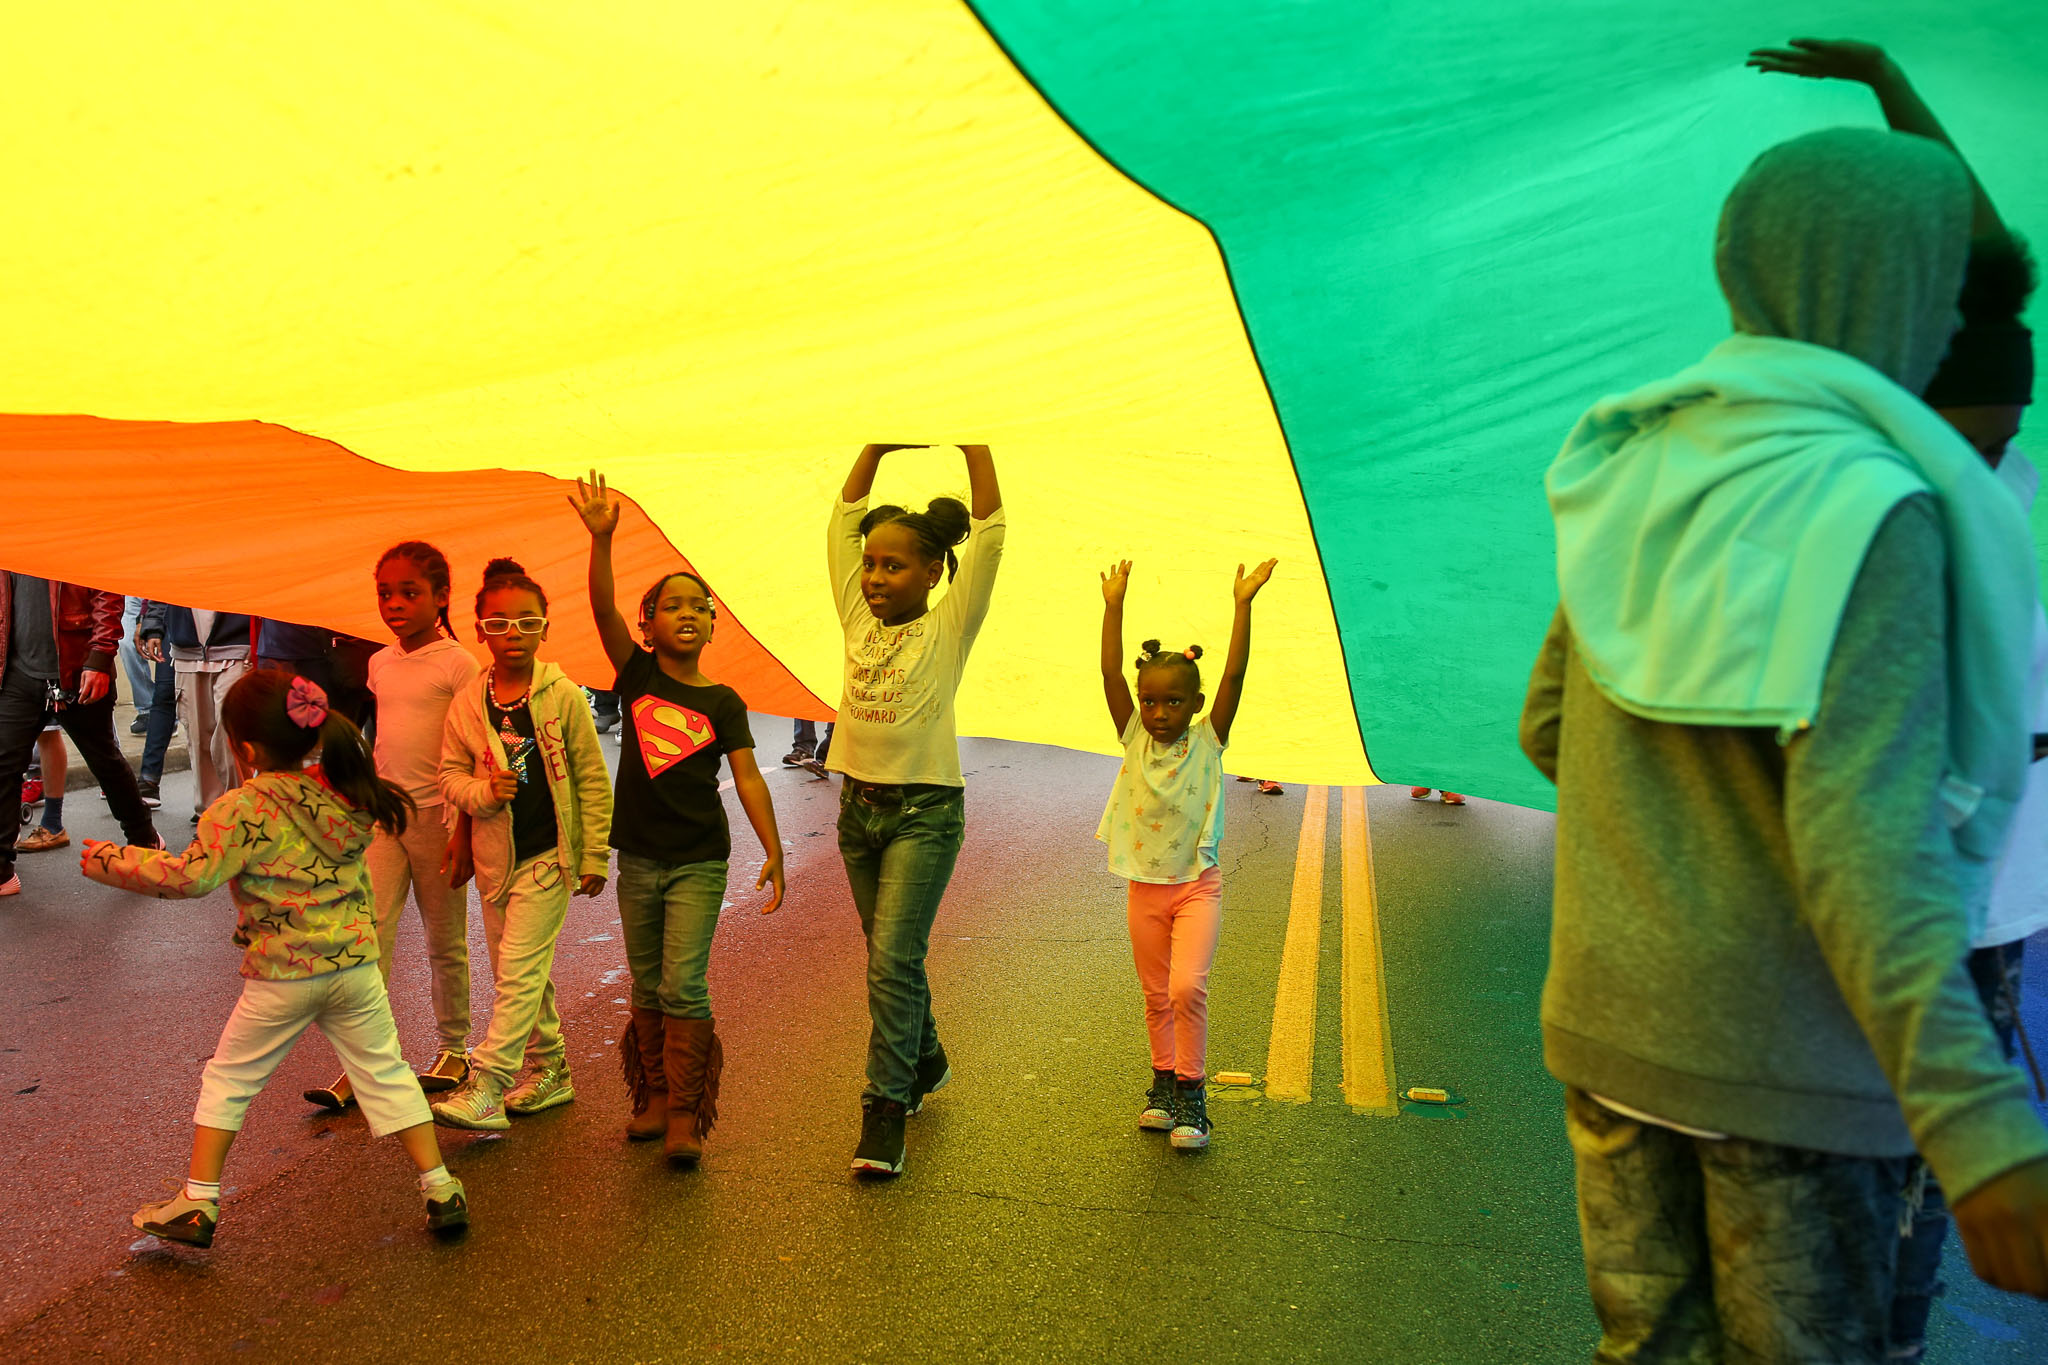 Children hold up a large rainbow colored flag following a large group sign reading 'INCLUSION'.